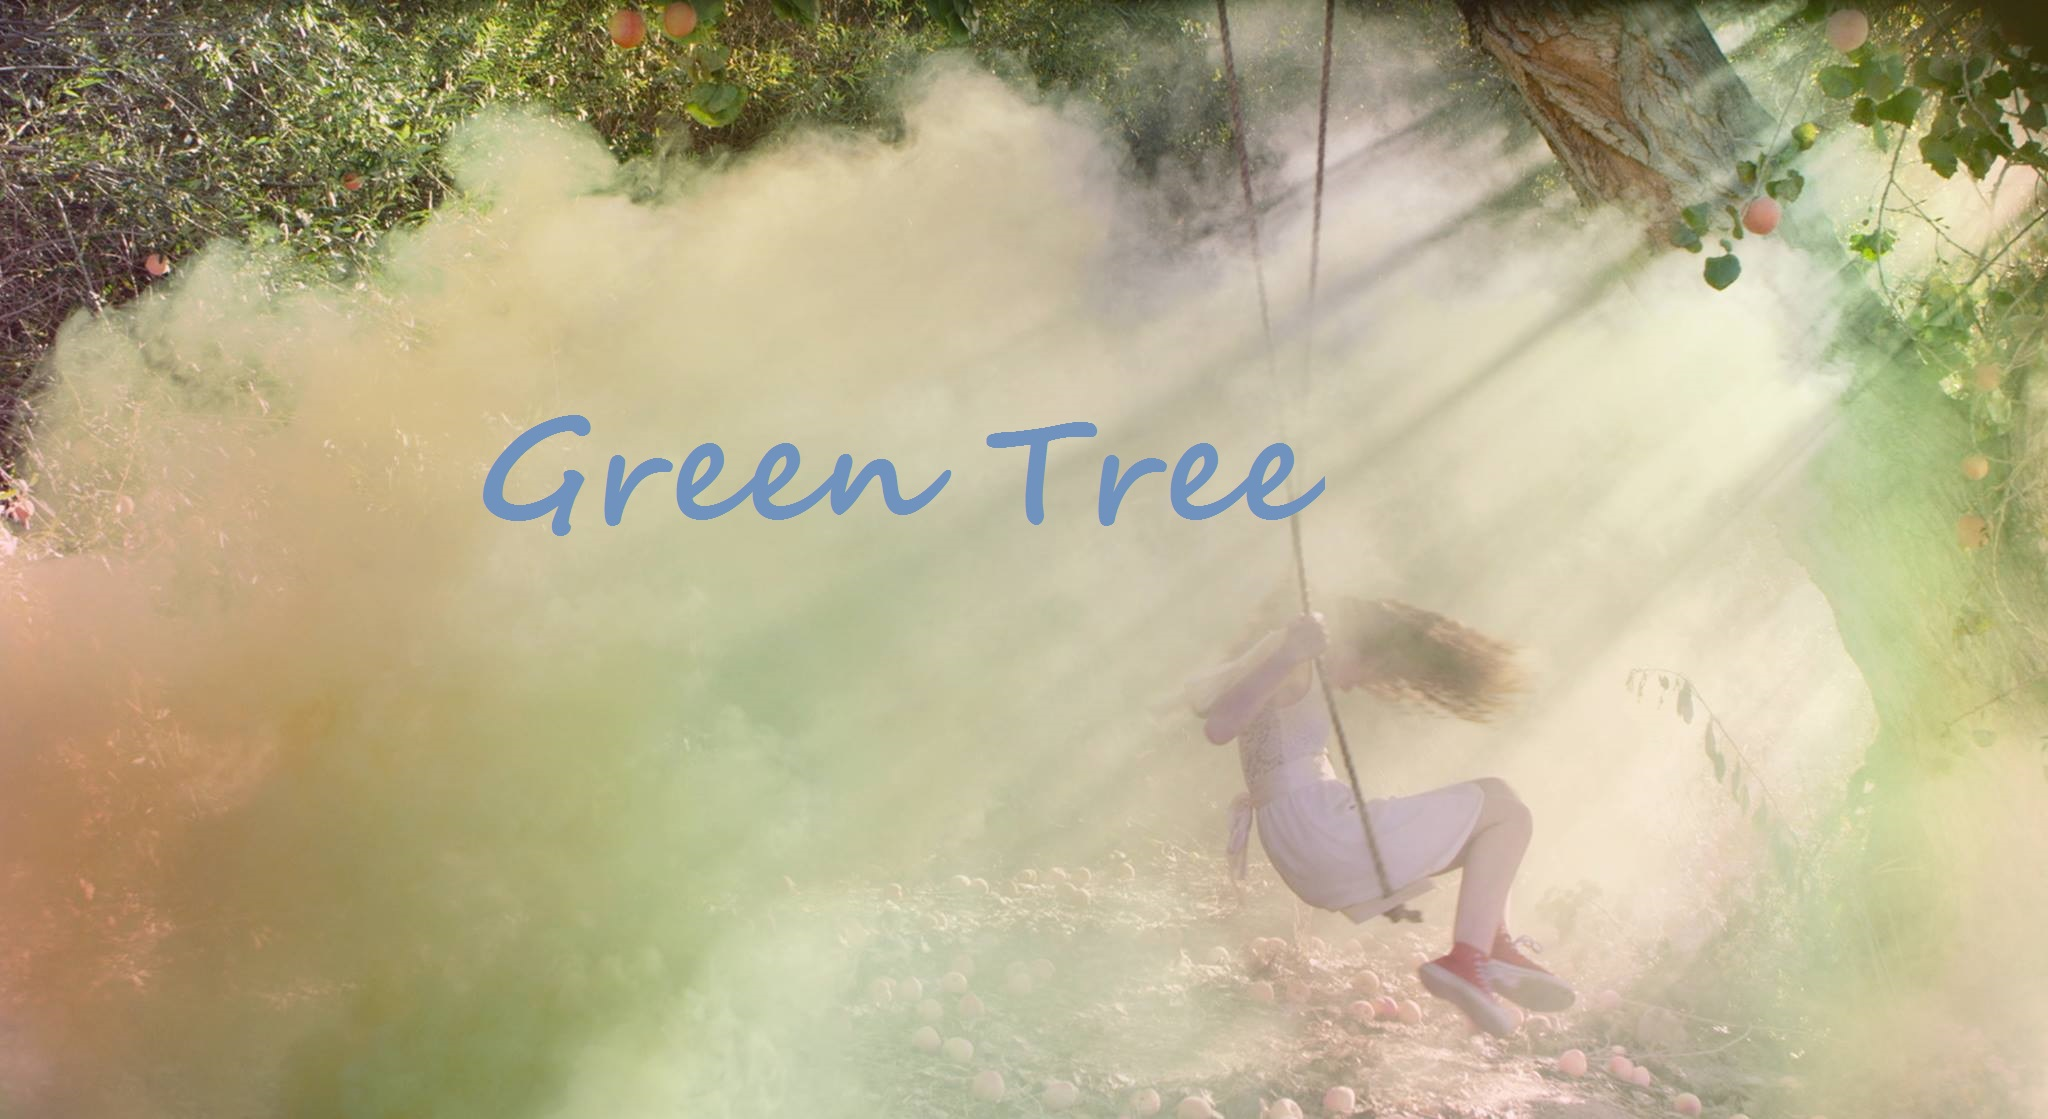 From 'Green Tree'